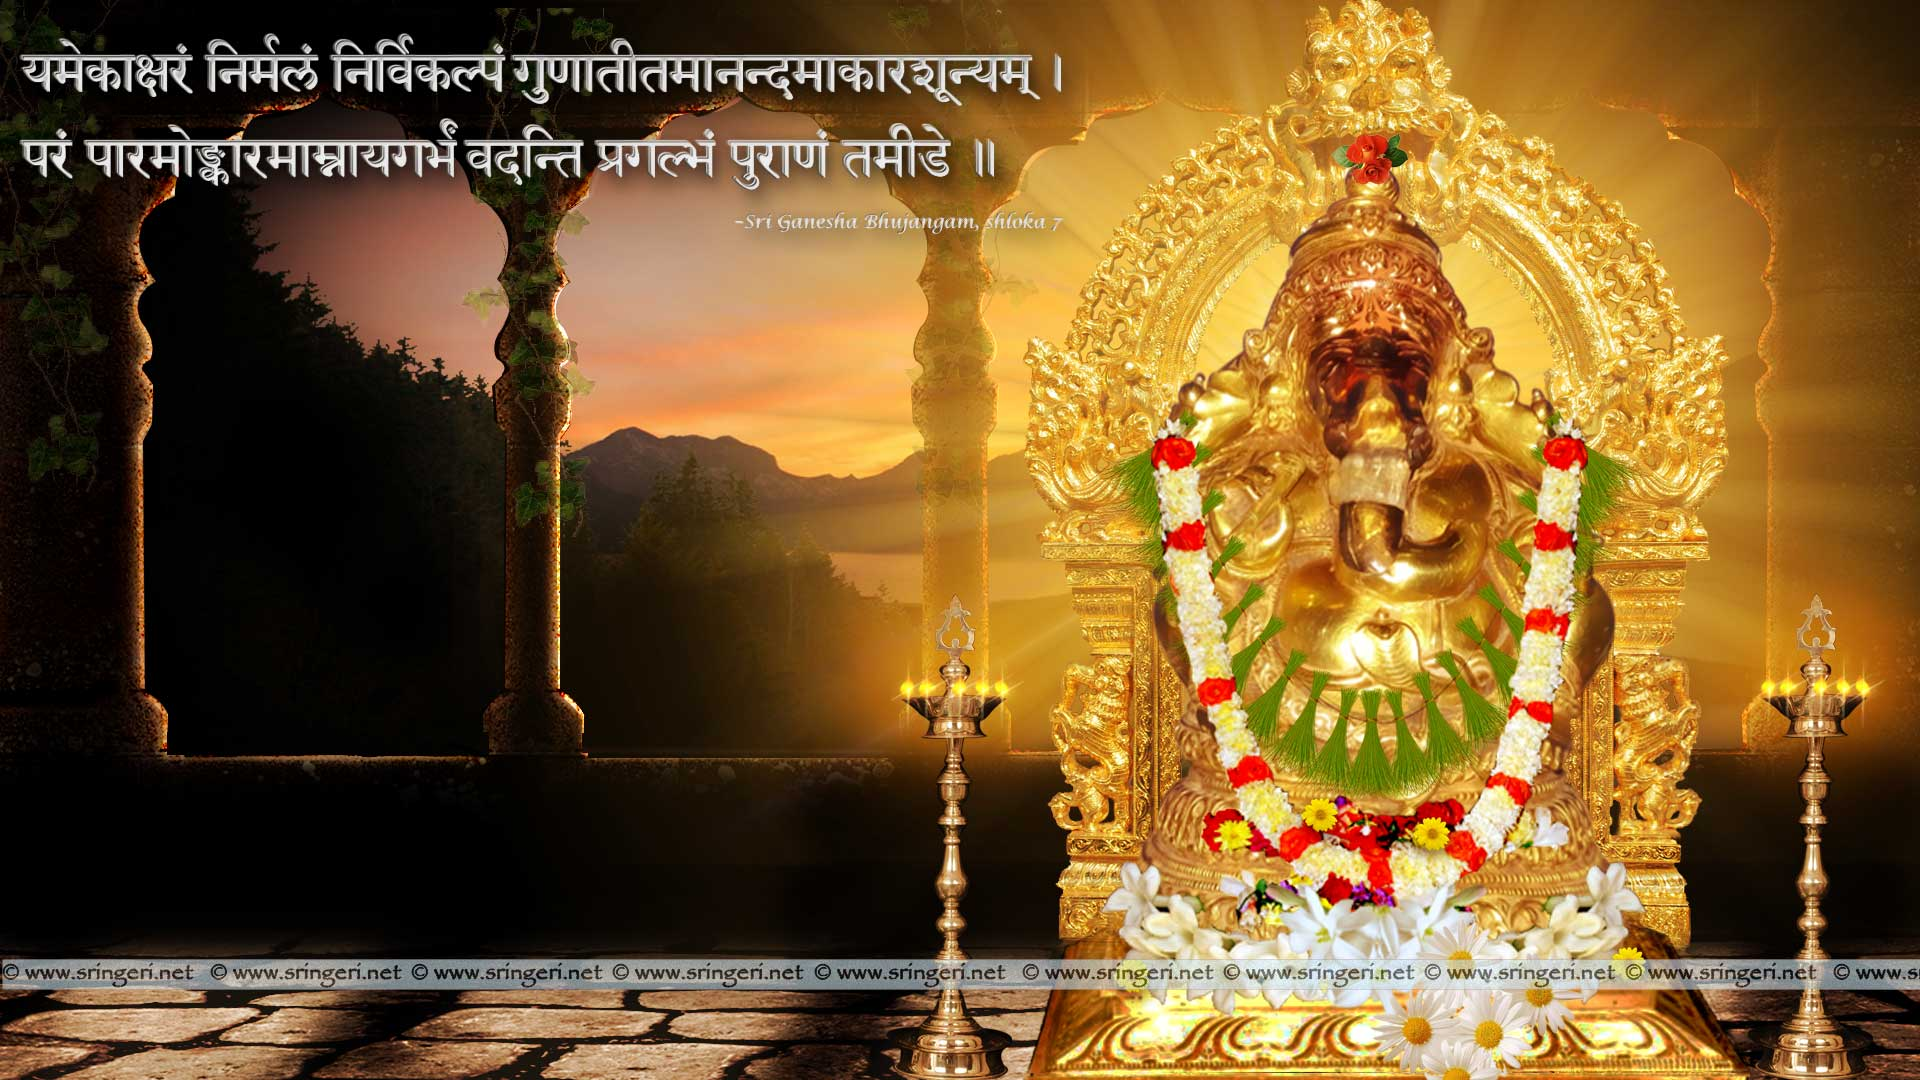 Vinayaka Chavithi Hd Wallpapers Ganesha Chaturthi Wallpapers Sringeri Sharada Peetham